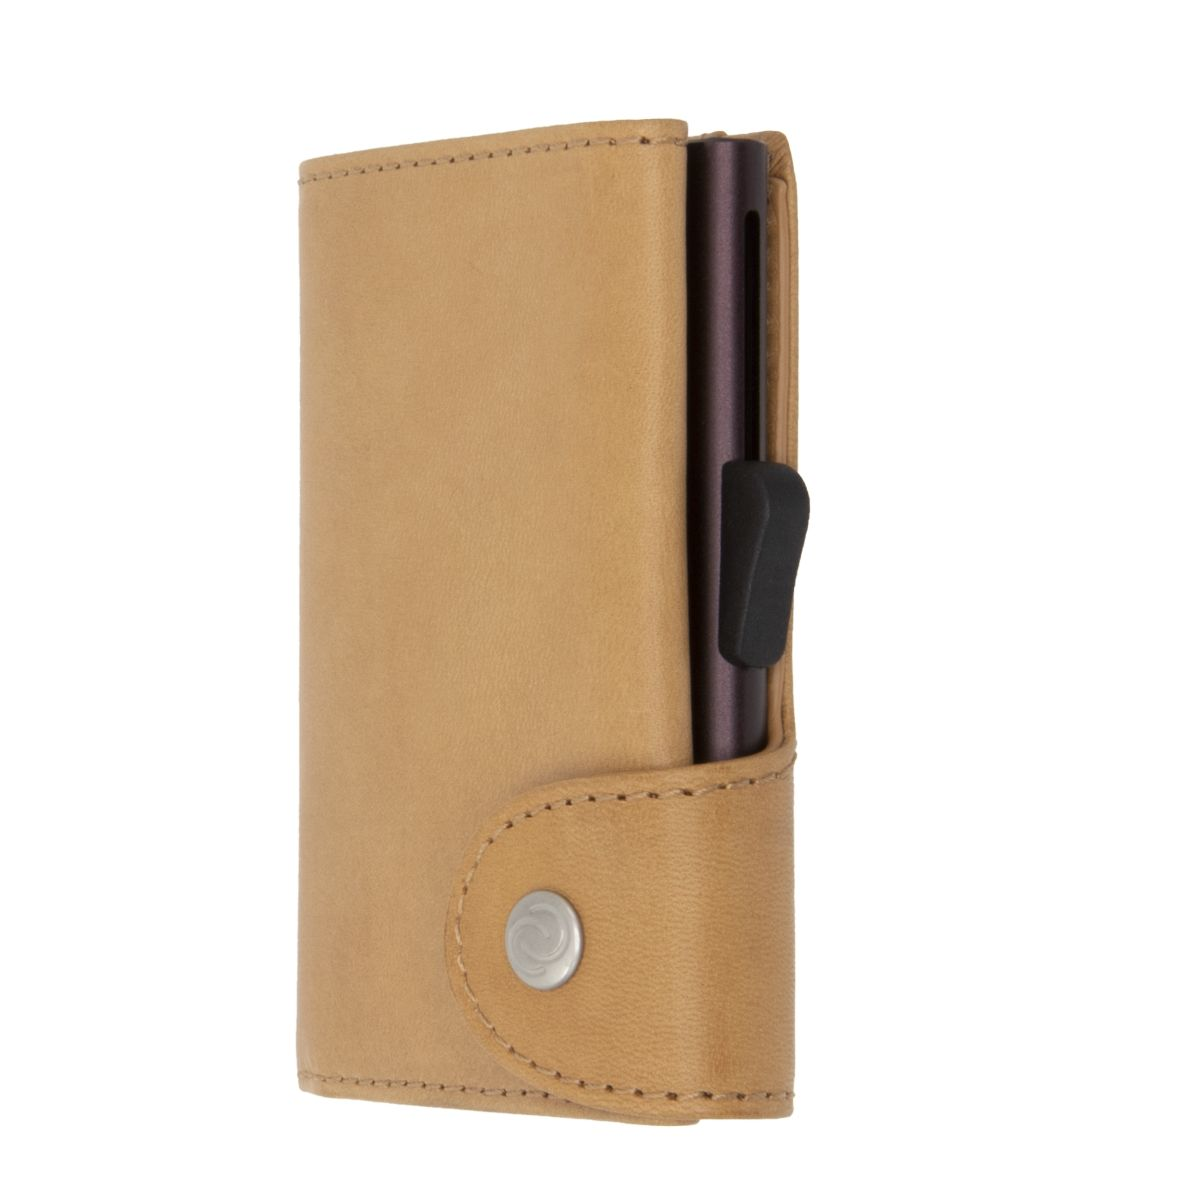 C-Secure Aluminum Card Holder with Genuine Leather - Saddle